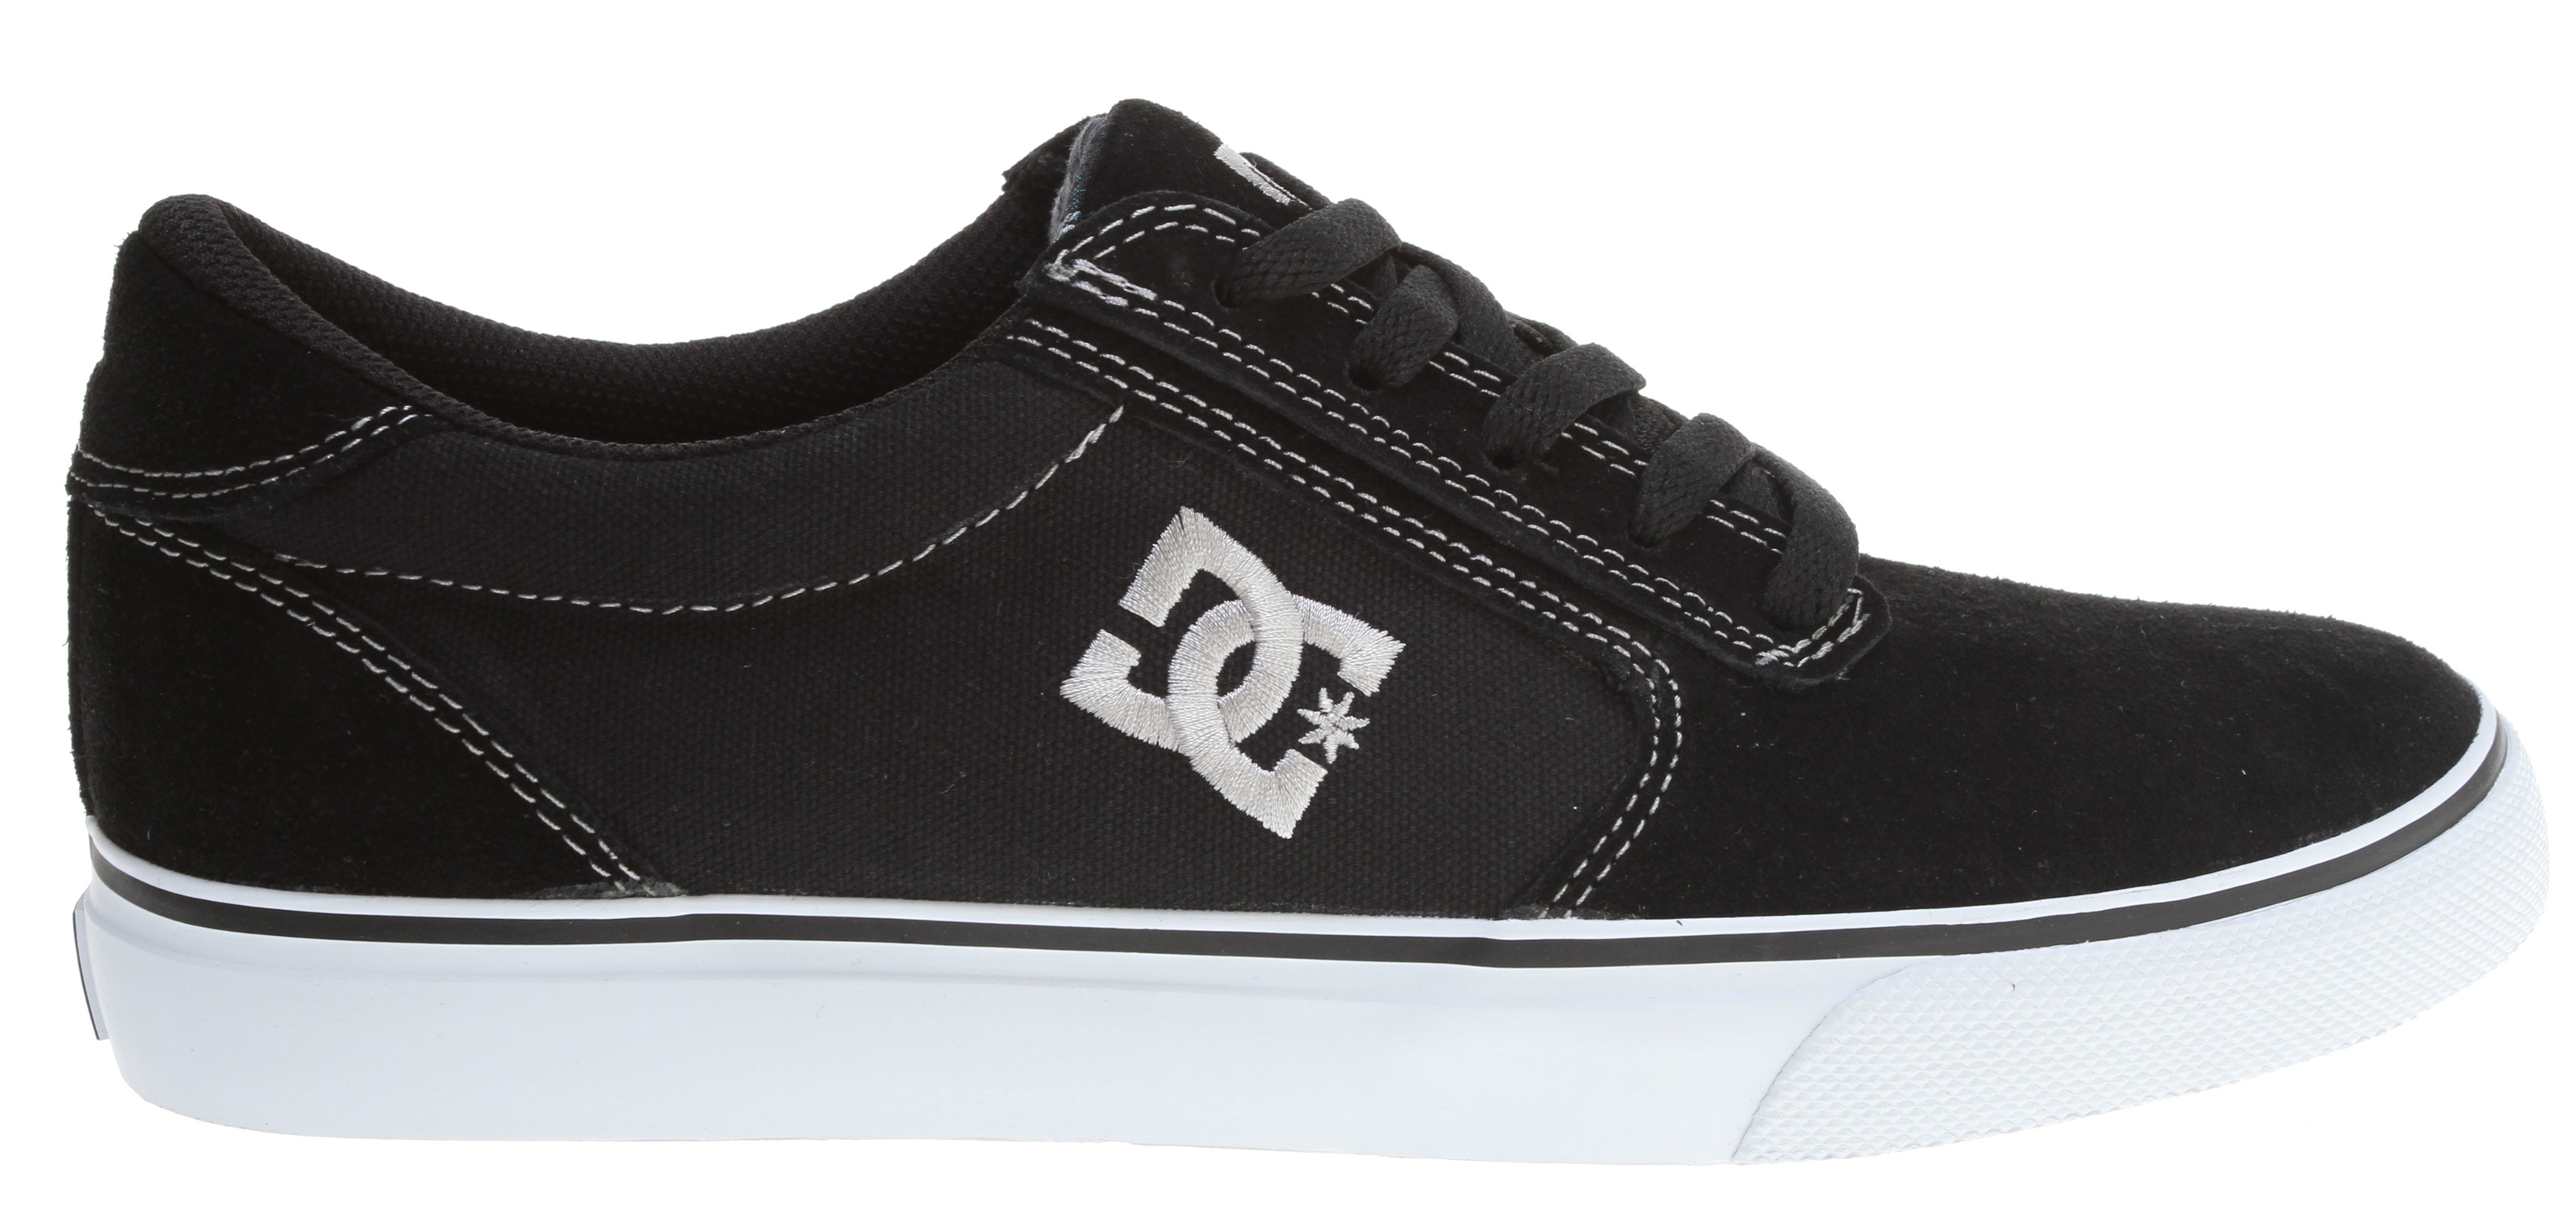 "Skateboard Key Features of the DC Gatsby 2 Skate Shoes: Heavy Duty Suede upper Clean single toe piece with embroidered logo Vulcanized construction for great board feel and sole flex Abrasion resistant sticky rubber outsole DC's Trademarked ""Pill Pattern"" bottom - $24.95"